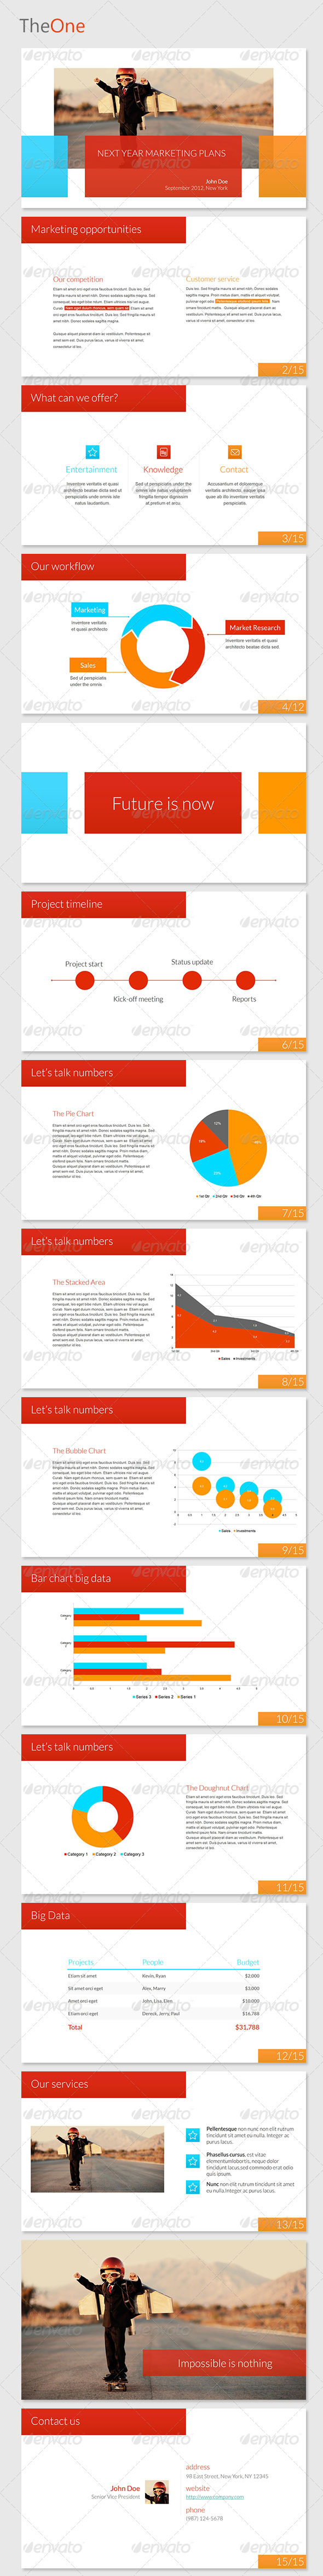 GraphicRiver TheOne Powerpoint Template 3205202